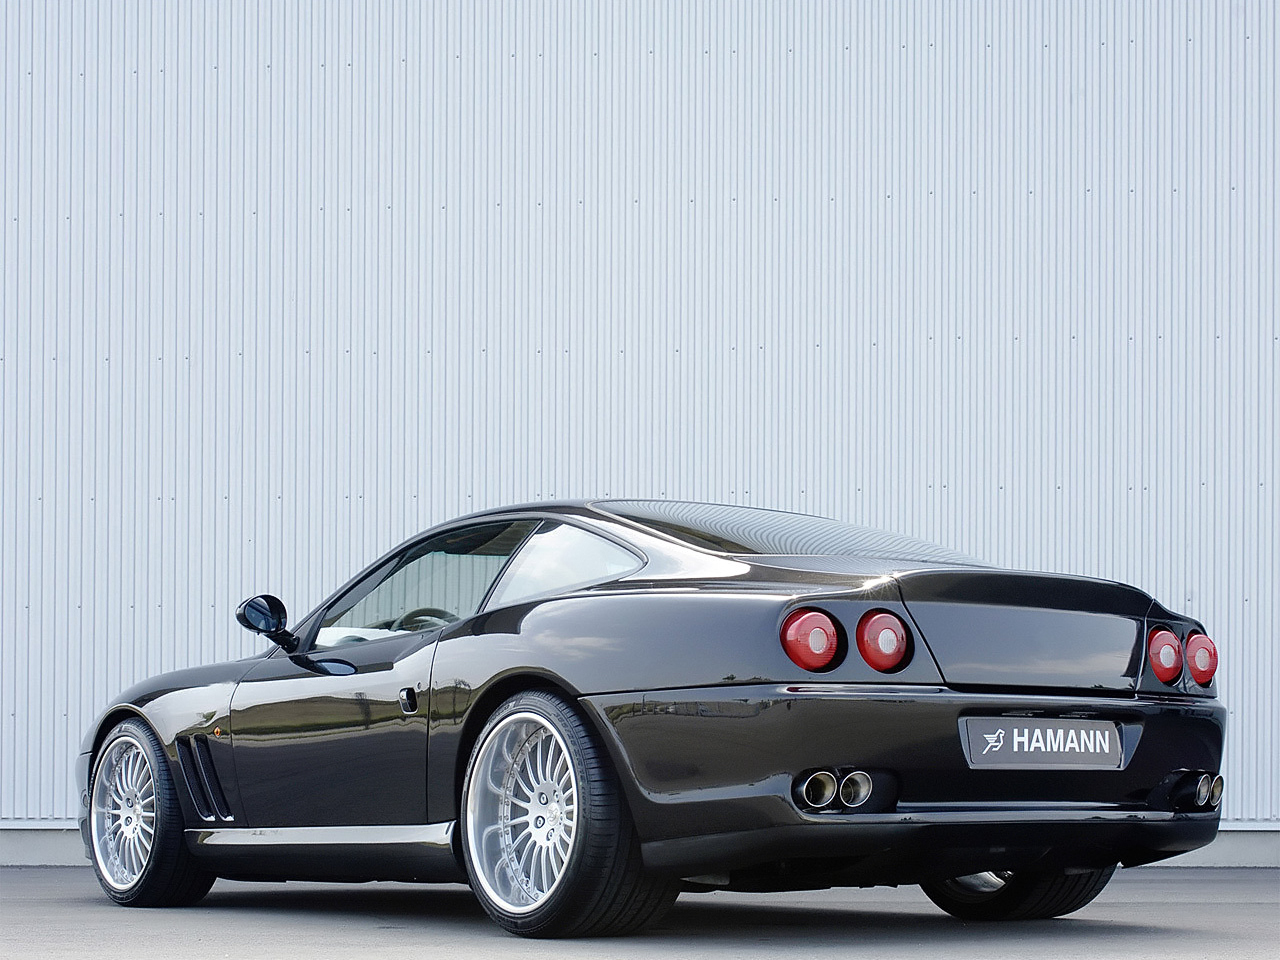 hamann ferrari 575 m maranello photos photogallery with 5 pics. Black Bedroom Furniture Sets. Home Design Ideas